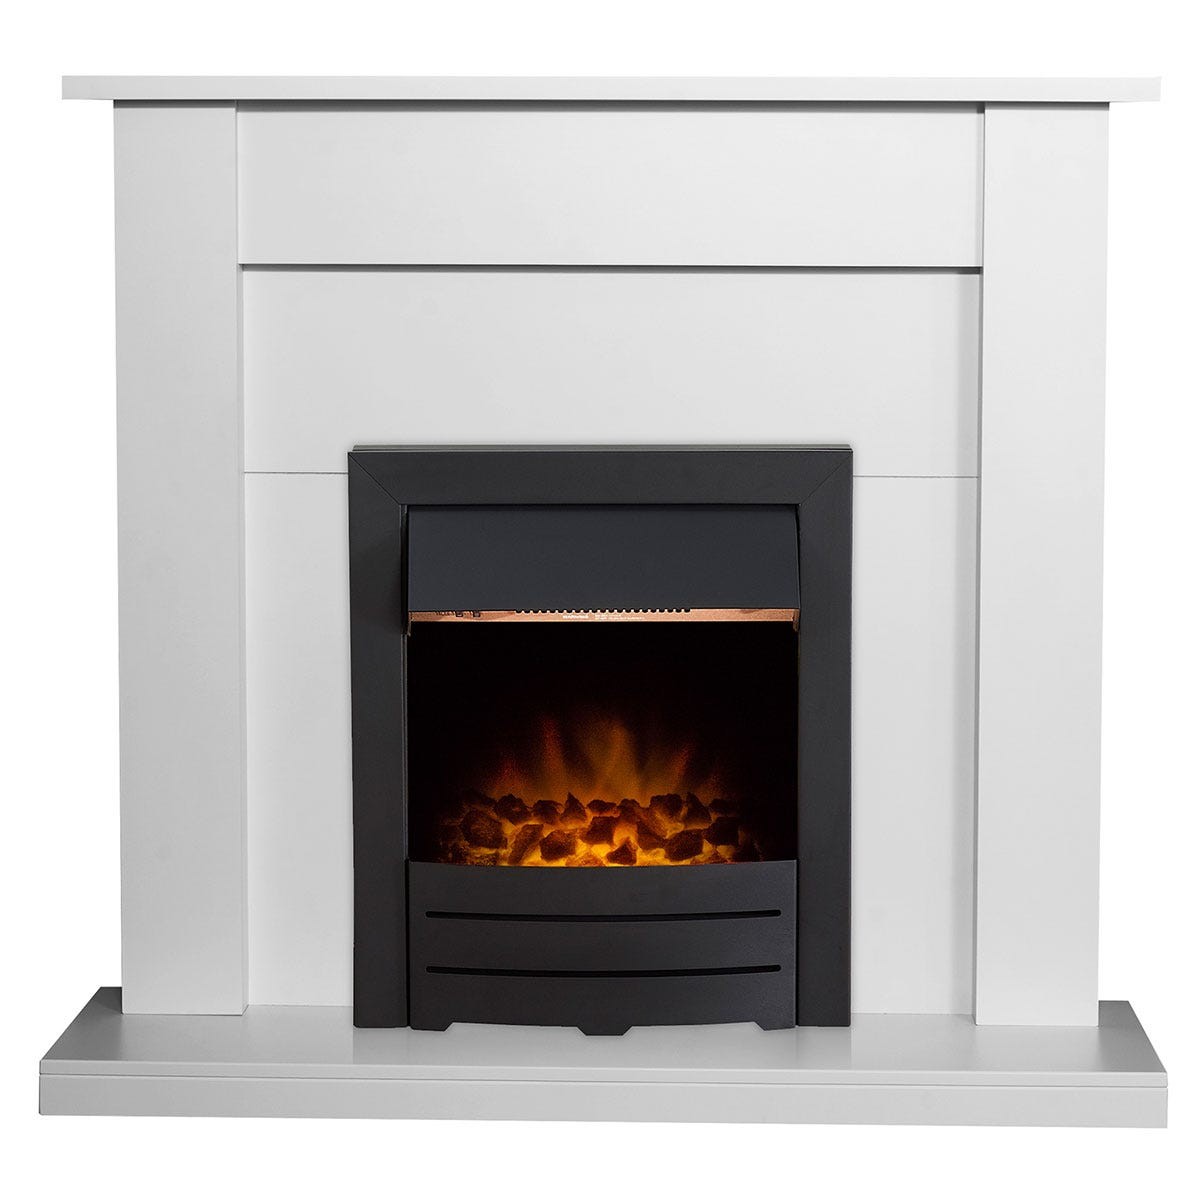 Adam Sutton Fireplace in Pure White with Colorado Electric Fire in Black 43 Inch